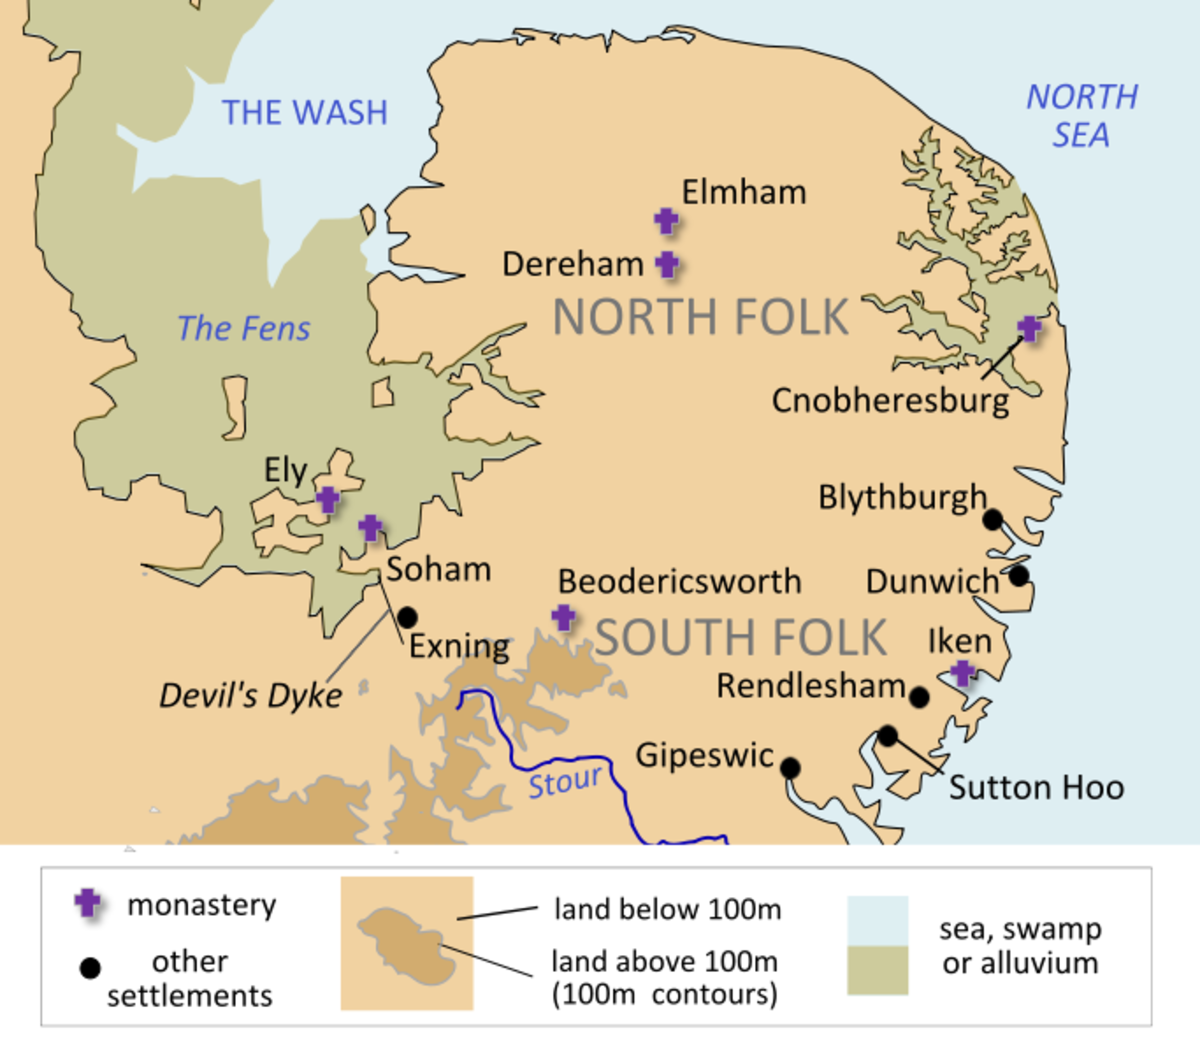 East Anglia was awash with marsh, sea channels and black, standing water. Ely was not easily - reached, and even then only by those 'in the know' who had grown to adulthood in the region by hunting or trade - ('Gipeswic' pron 'Yipeswich' = Ipswich)